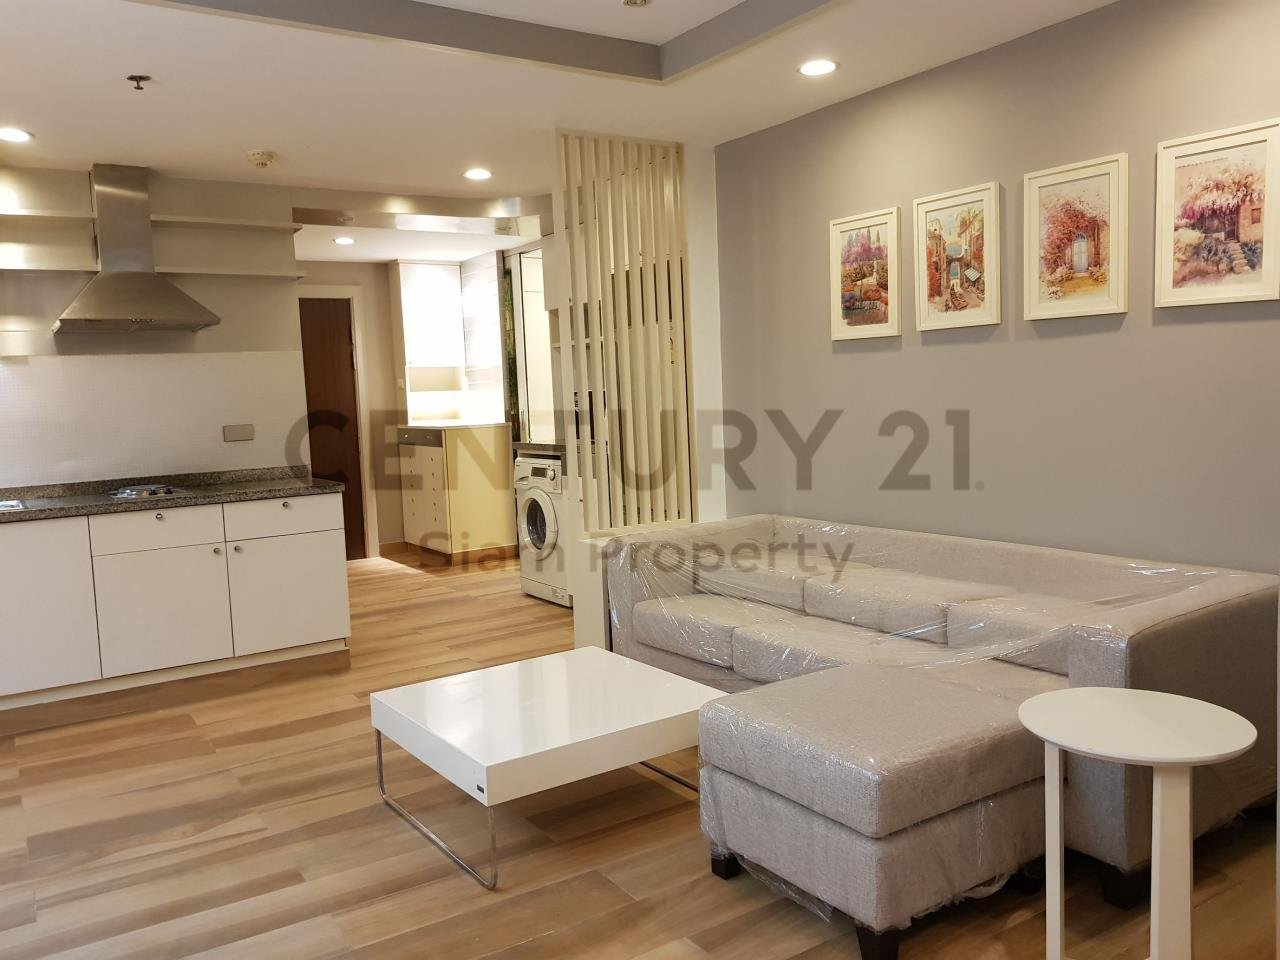 Century21 Siam Property Agency's The Trendy Condominium 3